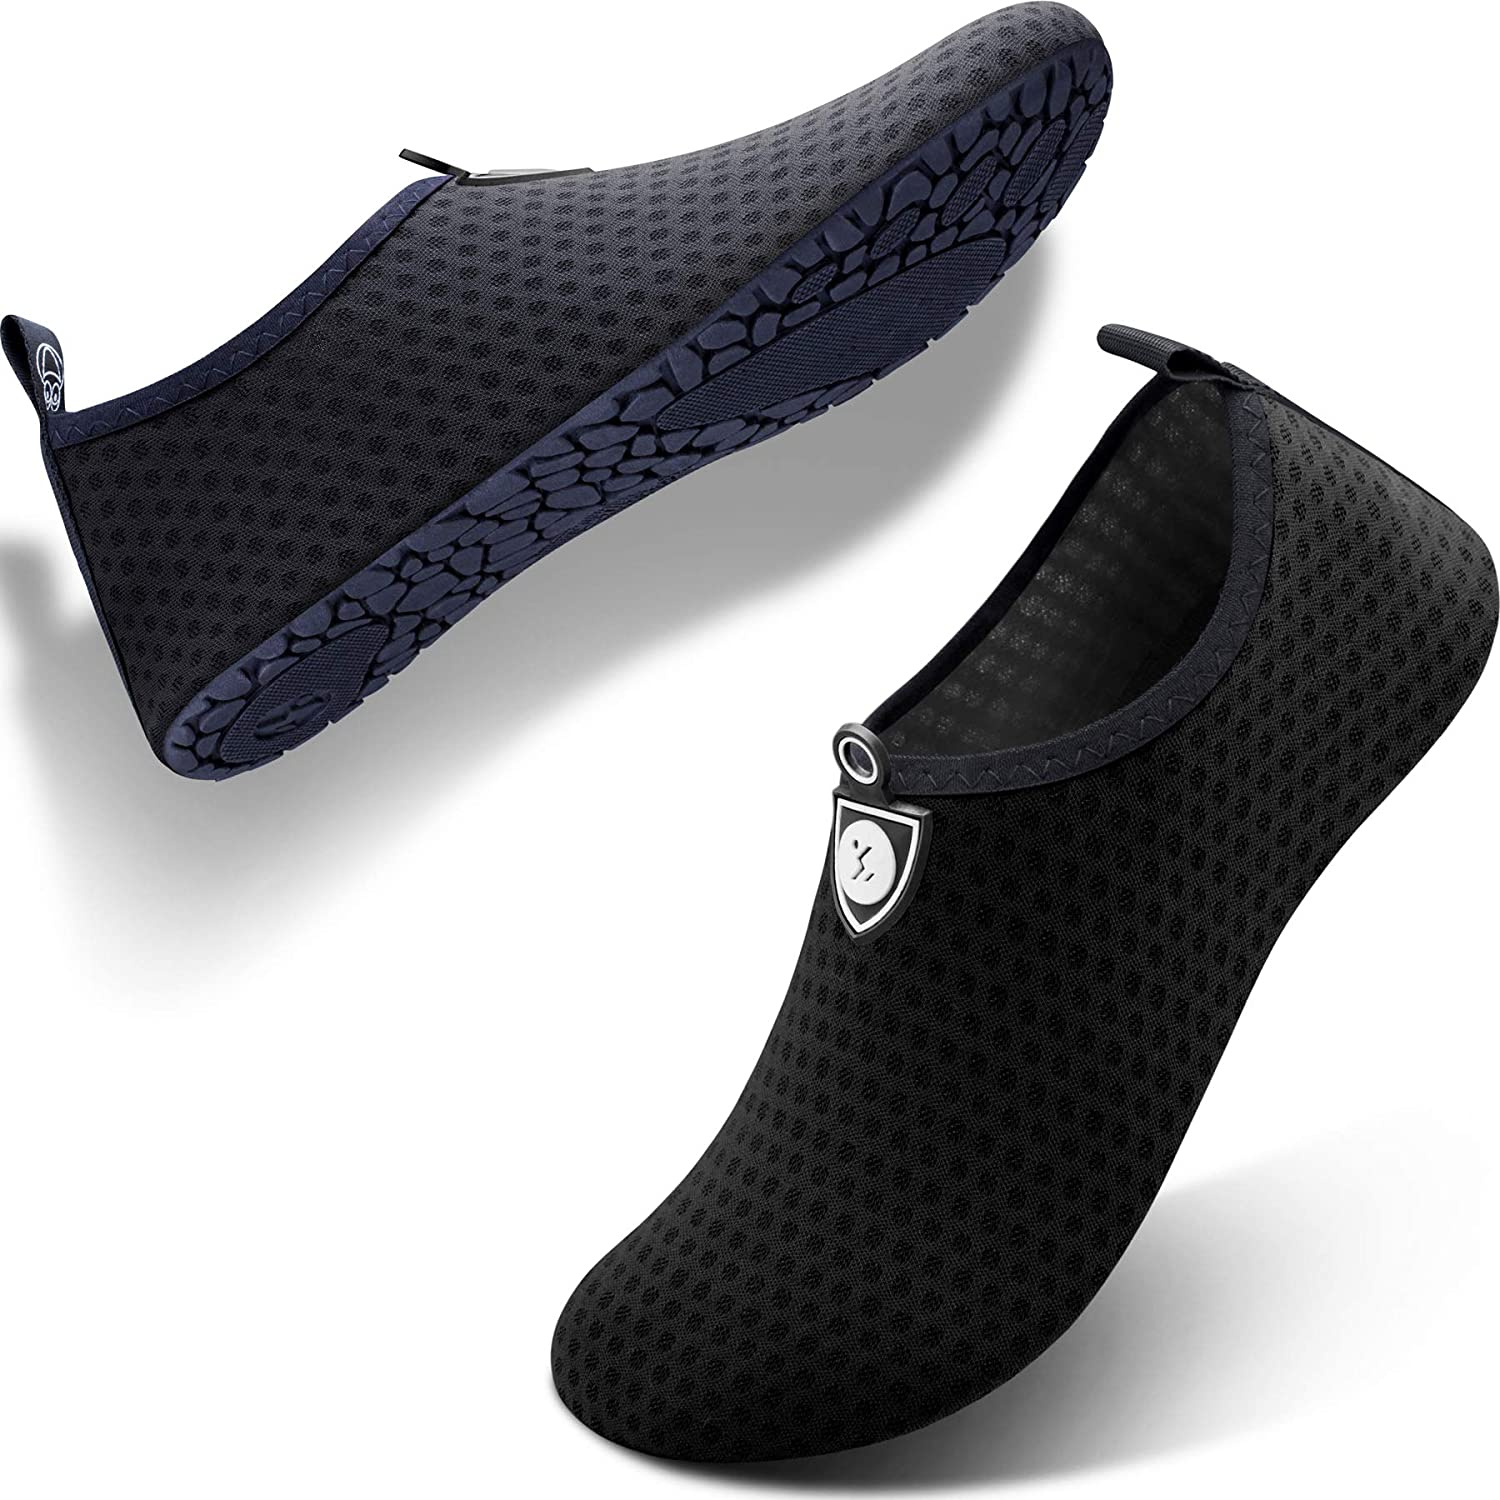 SIMARI Womens and Mens Water Shoes Quick Dry Aqua Socks Barefoot for Outdoor Beach Swim Surf Yoga Exercise SWS001